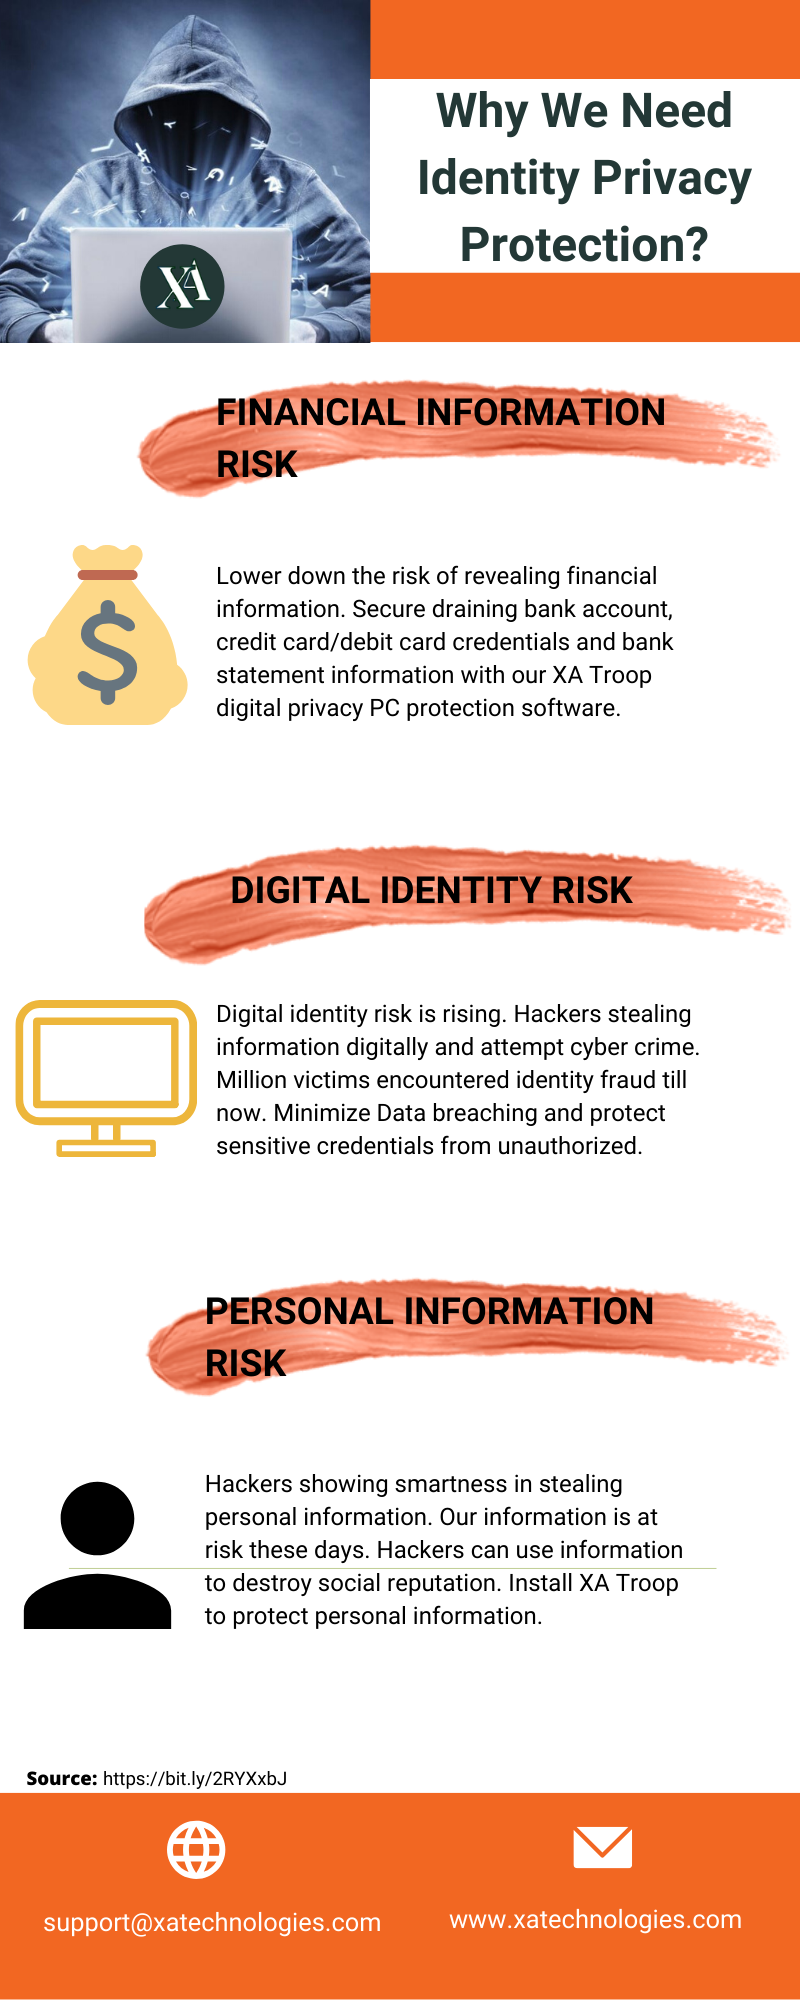 Identity theft risk is rising. Hacker you different tricks in order to steal information and attempt cyber crime to harm to financially or personally.Protect your privacy by downloading identity protection software. . . #xatroop #xa #antivirus #software#data #safety #security #protection #privacy#digitaltheft #digitalidentity #privacyprotection#logincredentials #bankaccount #datasecurity#securitysoftware